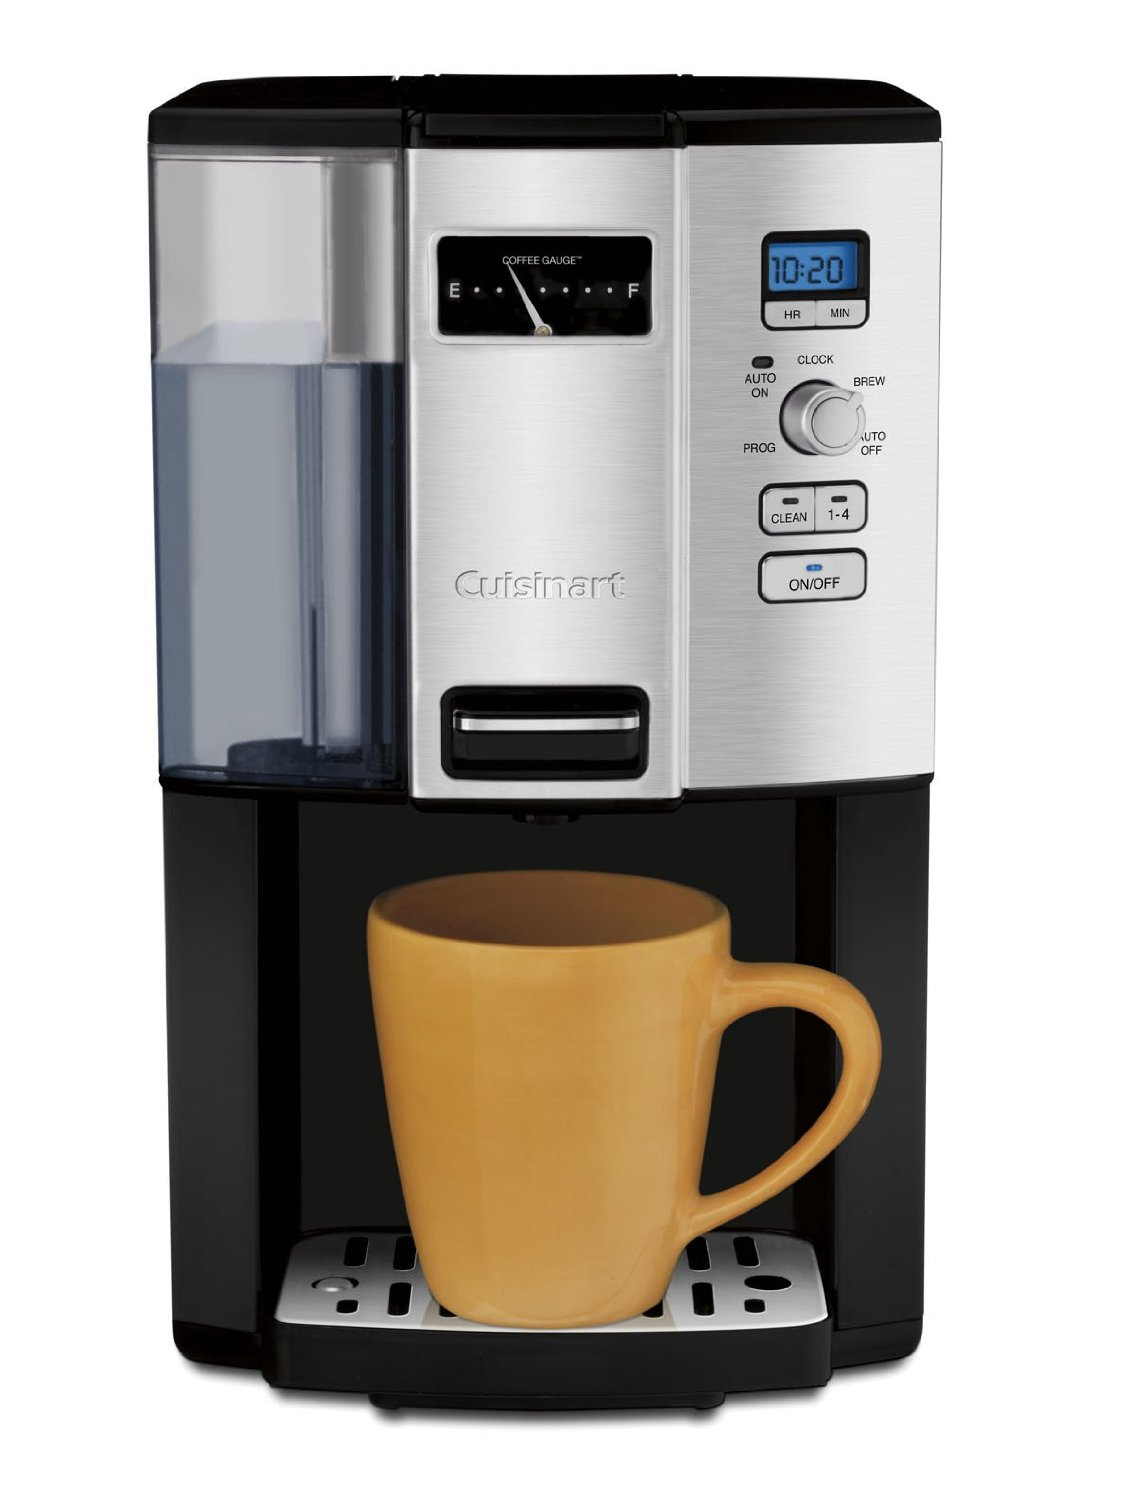 10 best coffee makers for office Coffee maker brands